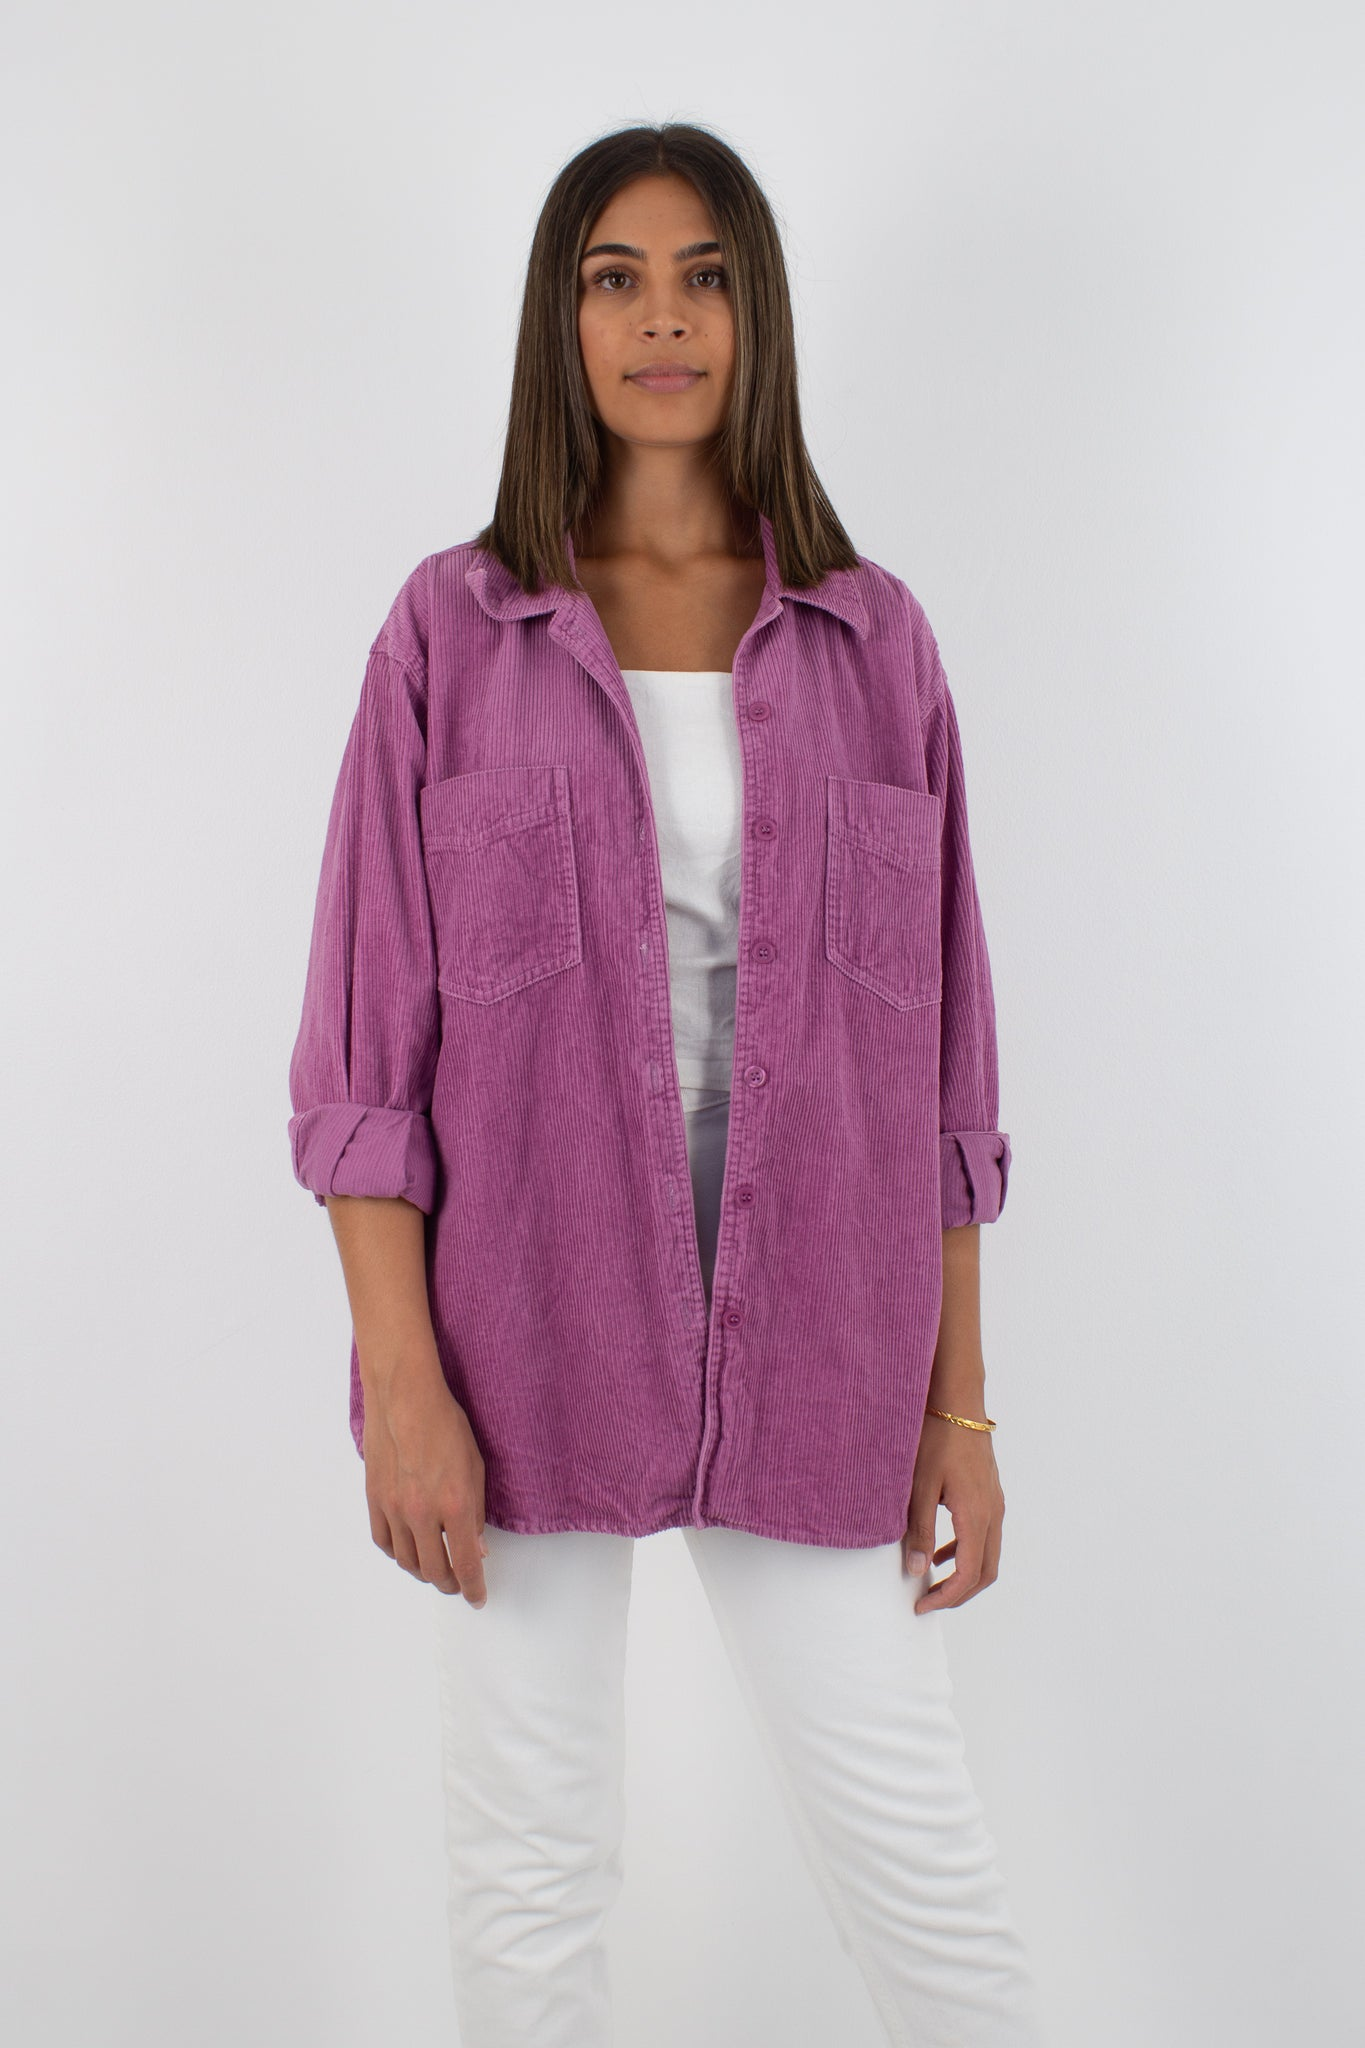 Magenta Cord Button Up Jacket - Size M